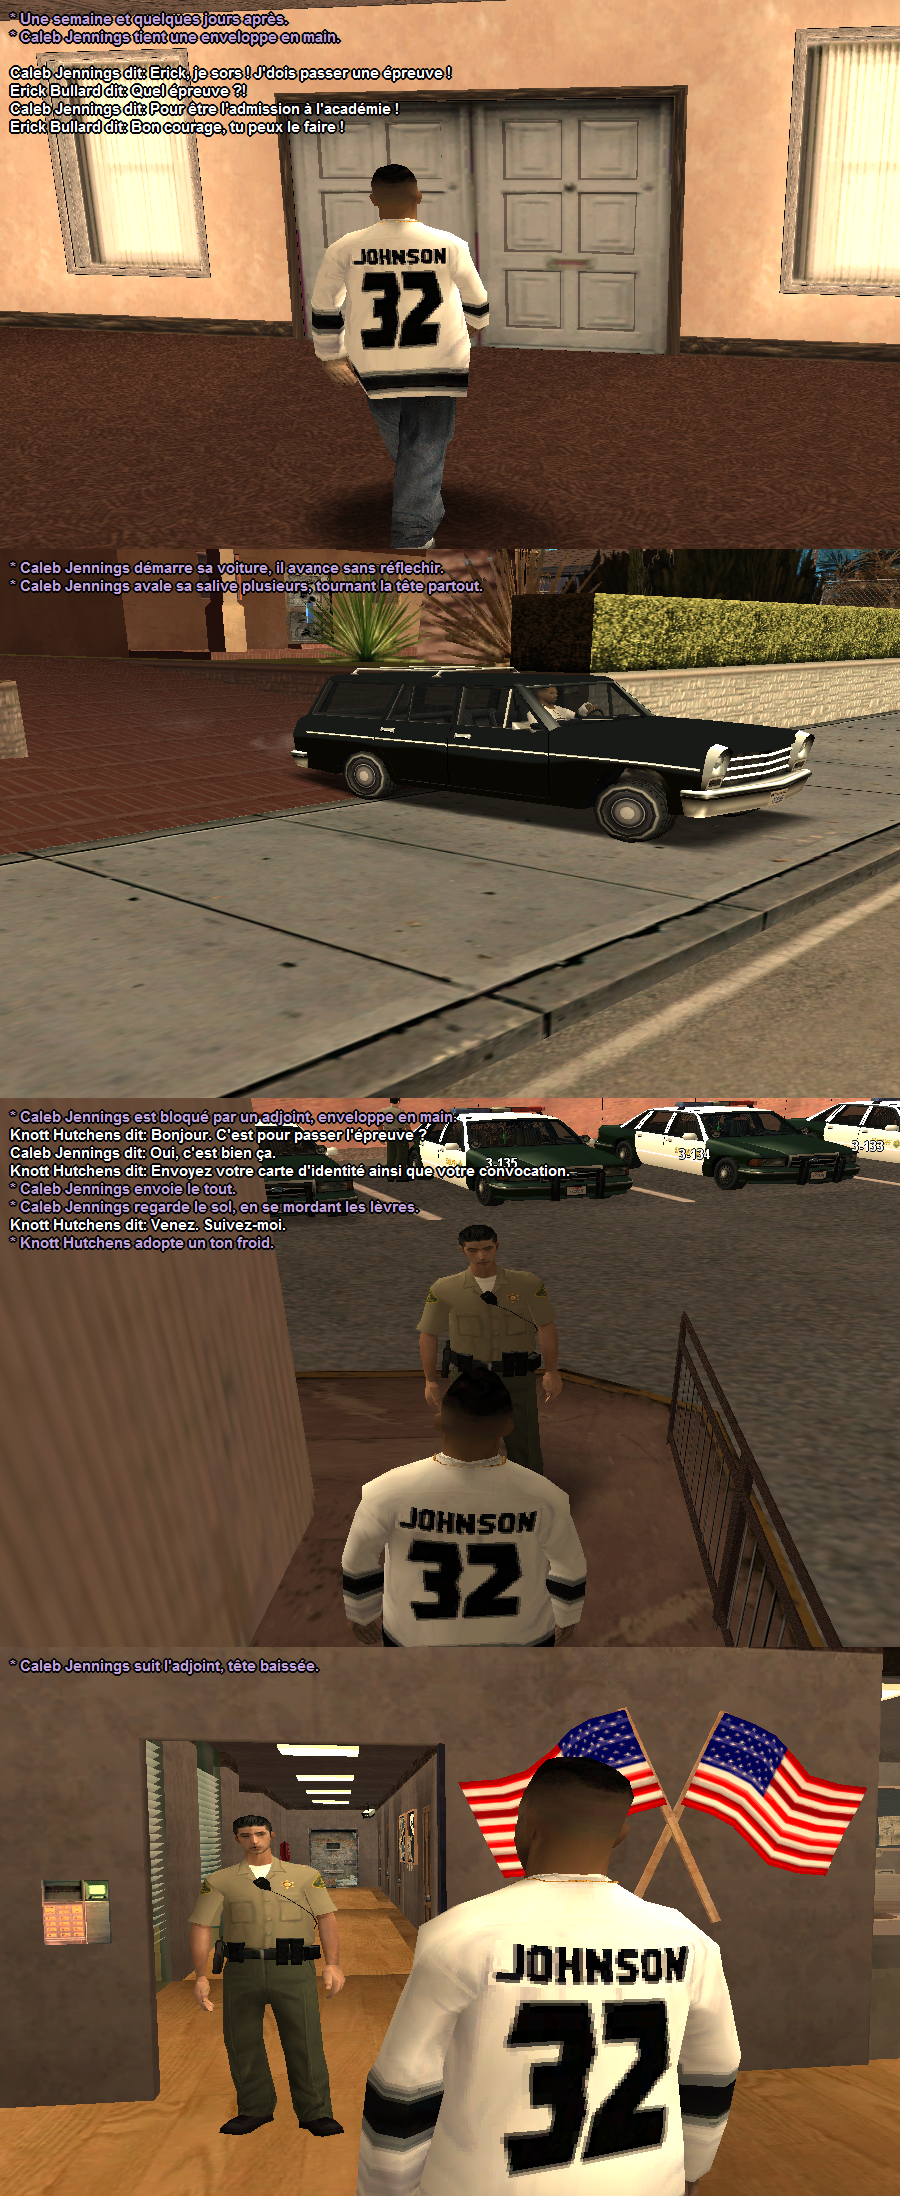 Los Santos Sheriff's Department - A tradition of service (8) - Page 9 1530785559-b